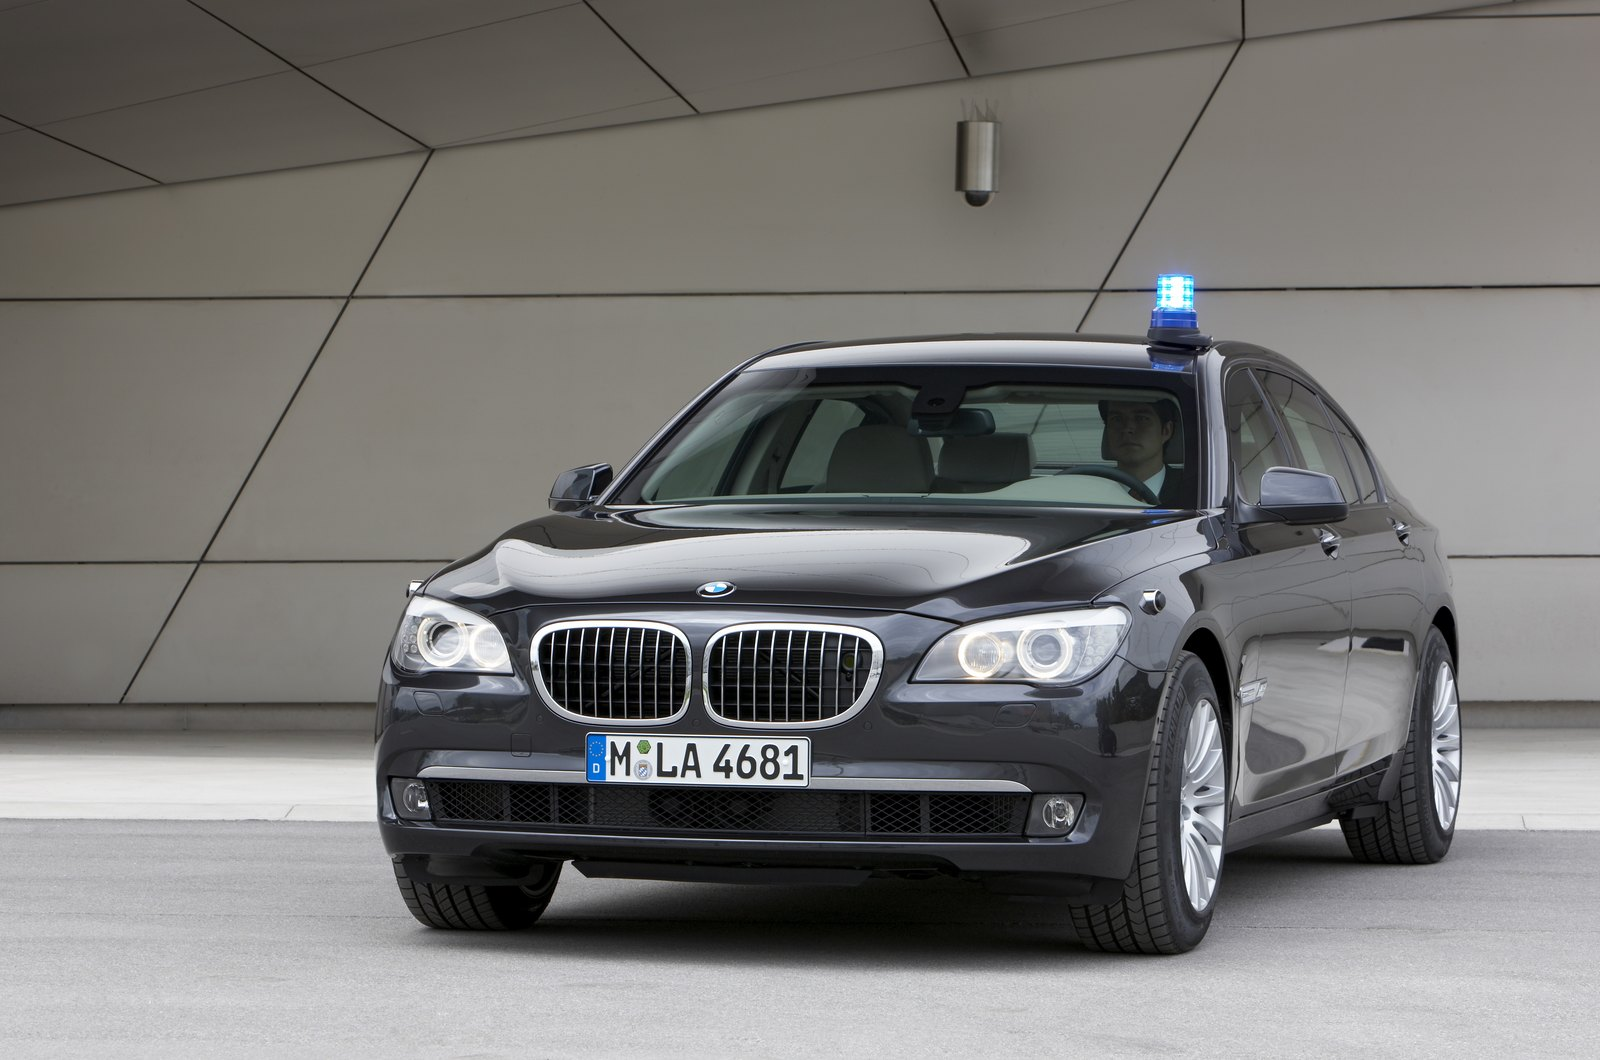 bmw security 7 series